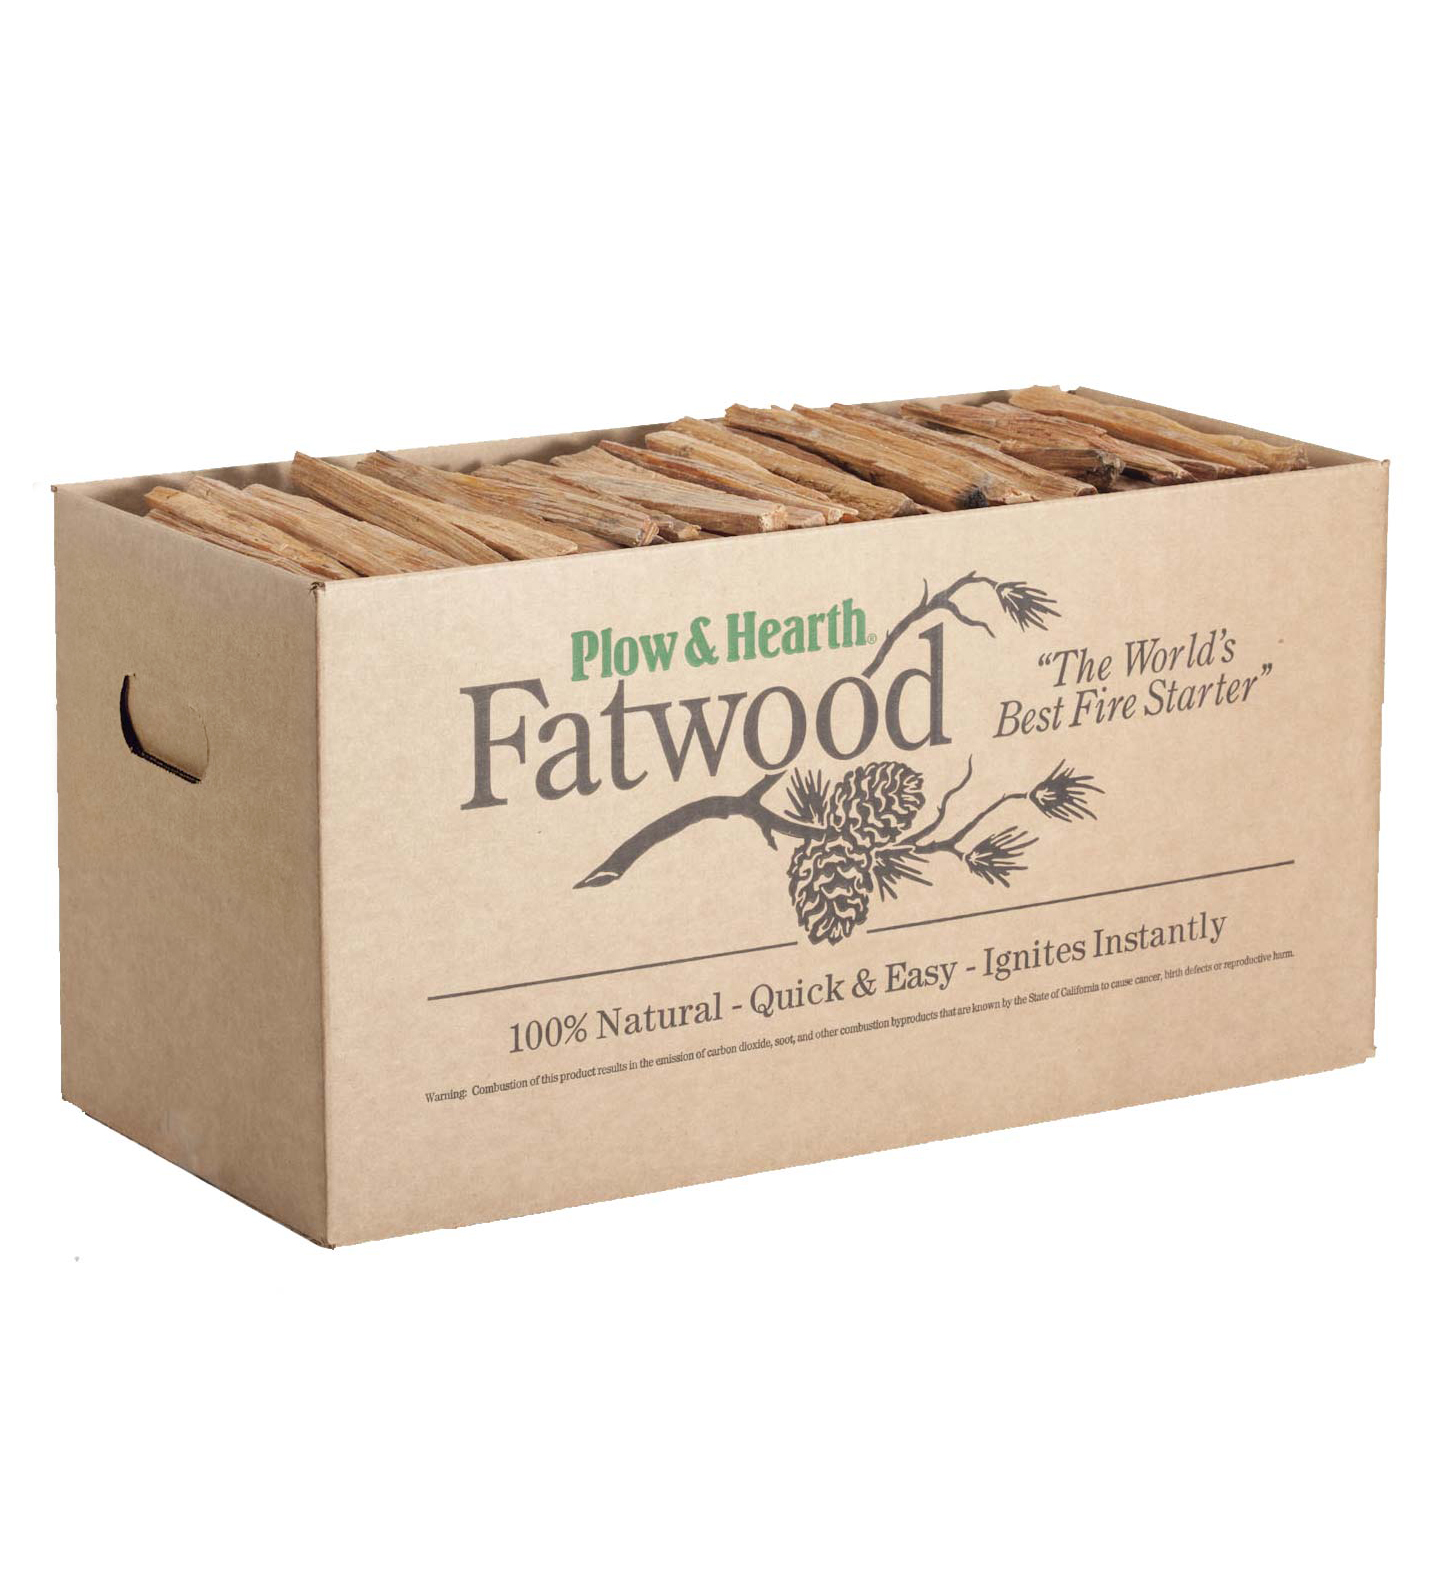 Plow & Hearth Easy-Start Fatwood Fire Starter, 35 lb. Box...